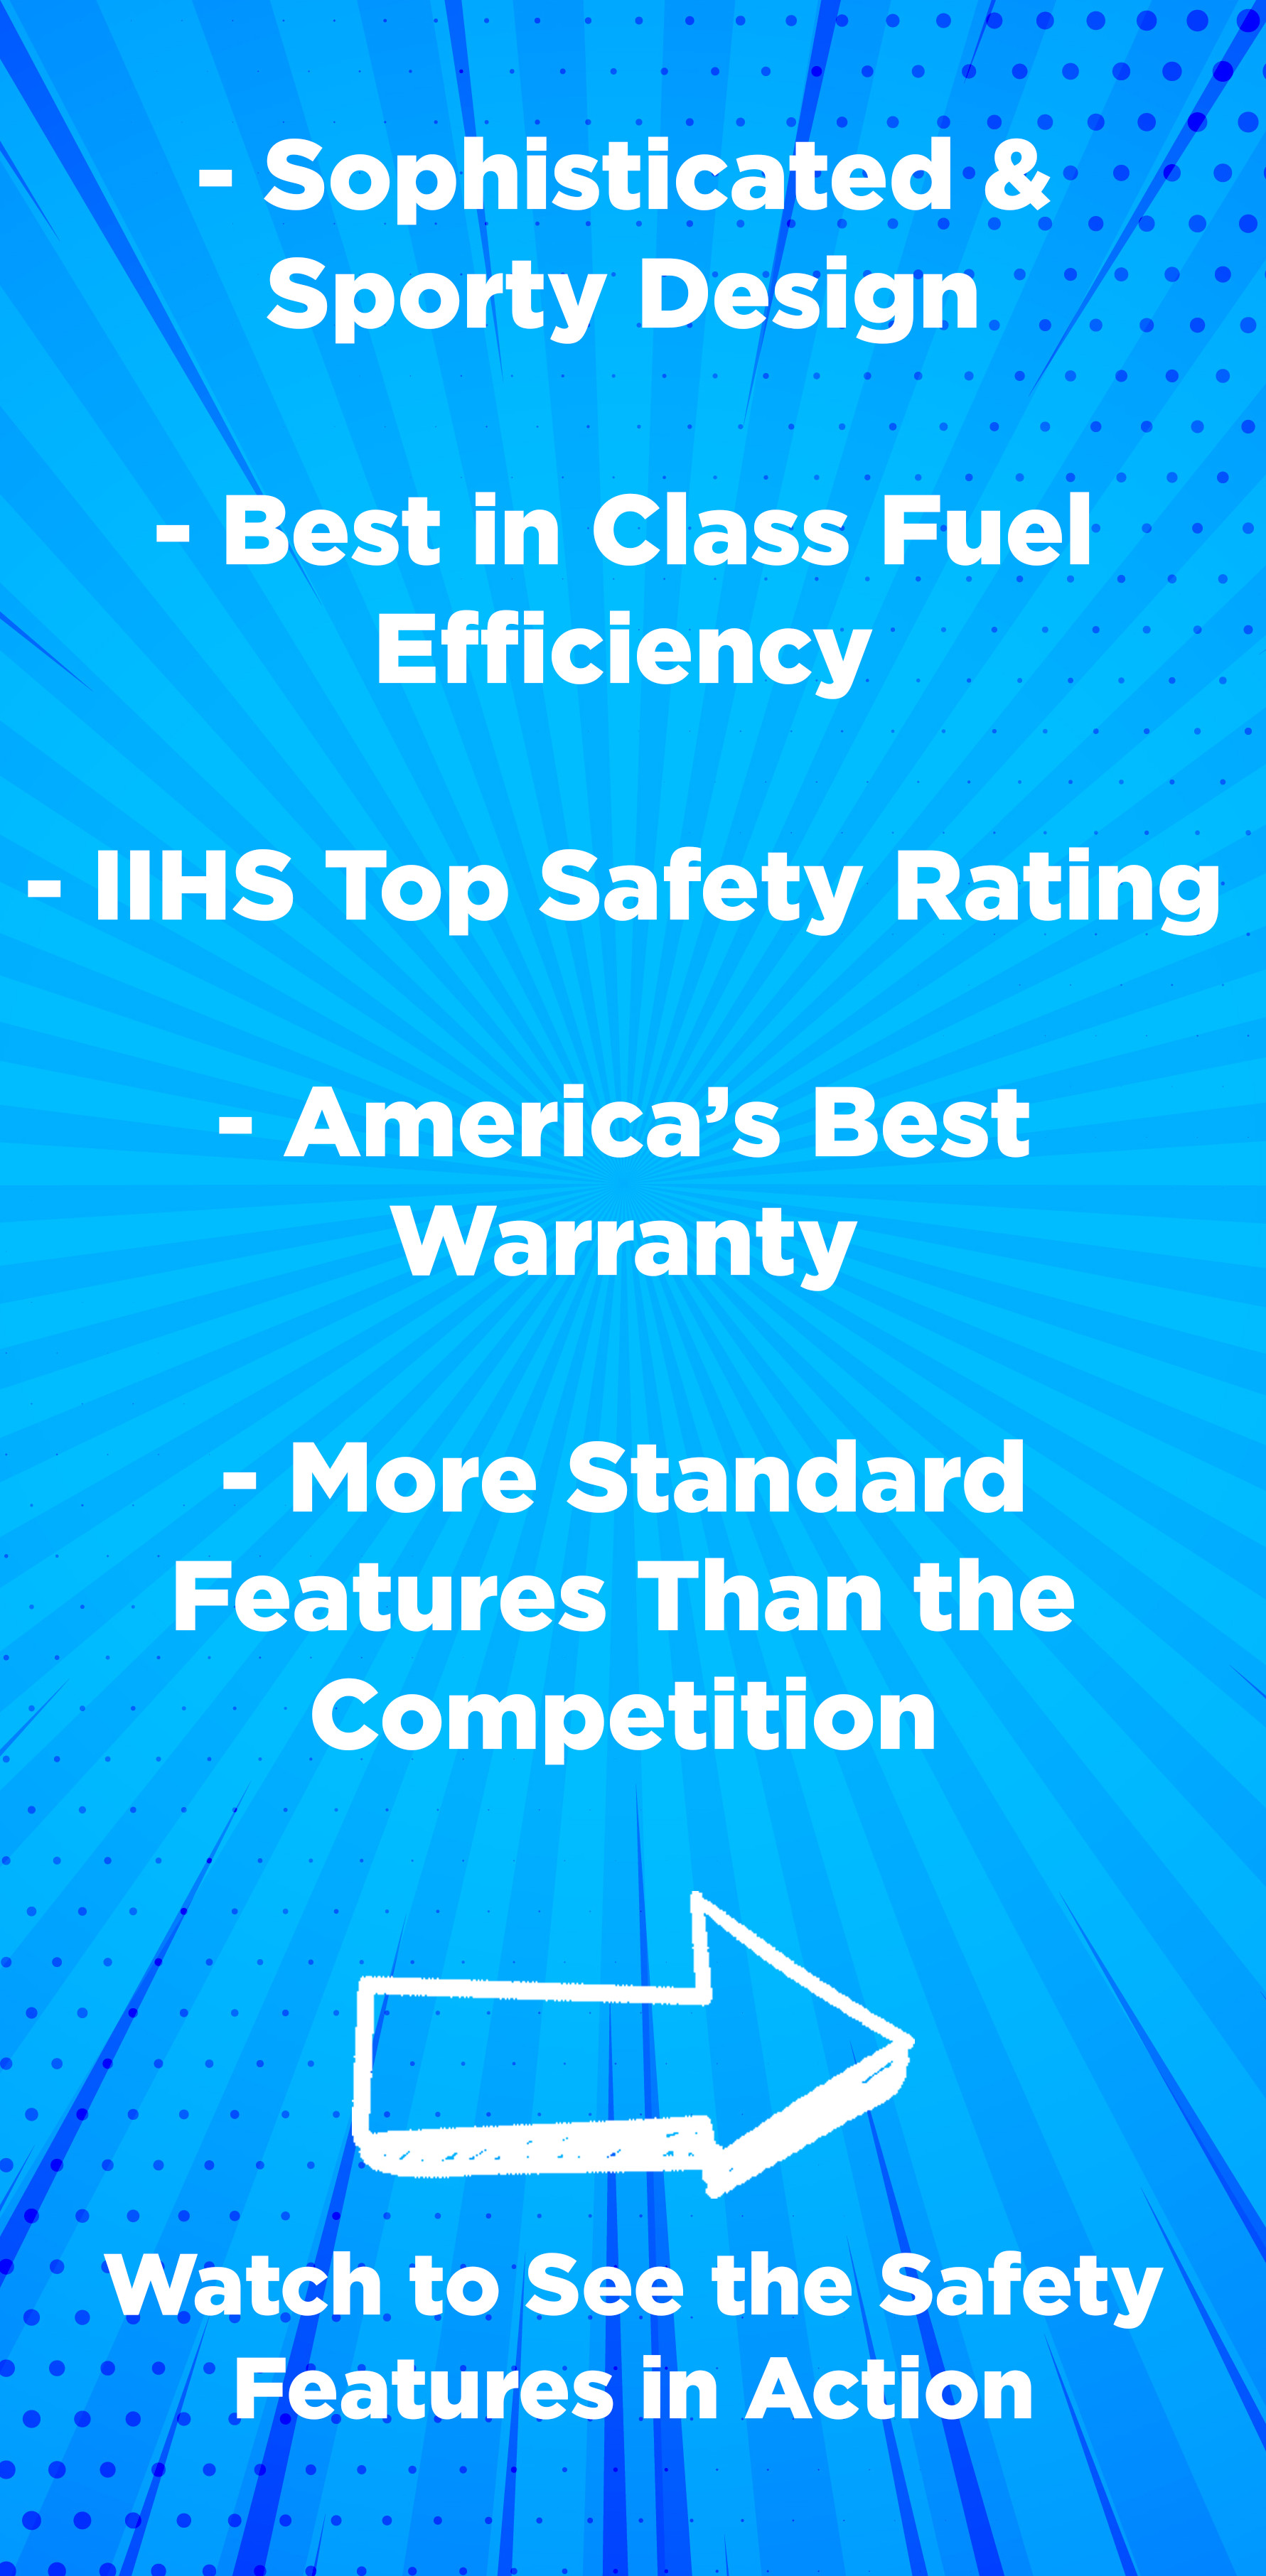 New Design. Best in class Fuel Efficiency. IIHS Top Rating. Americas best Warranty. More features than the competition.